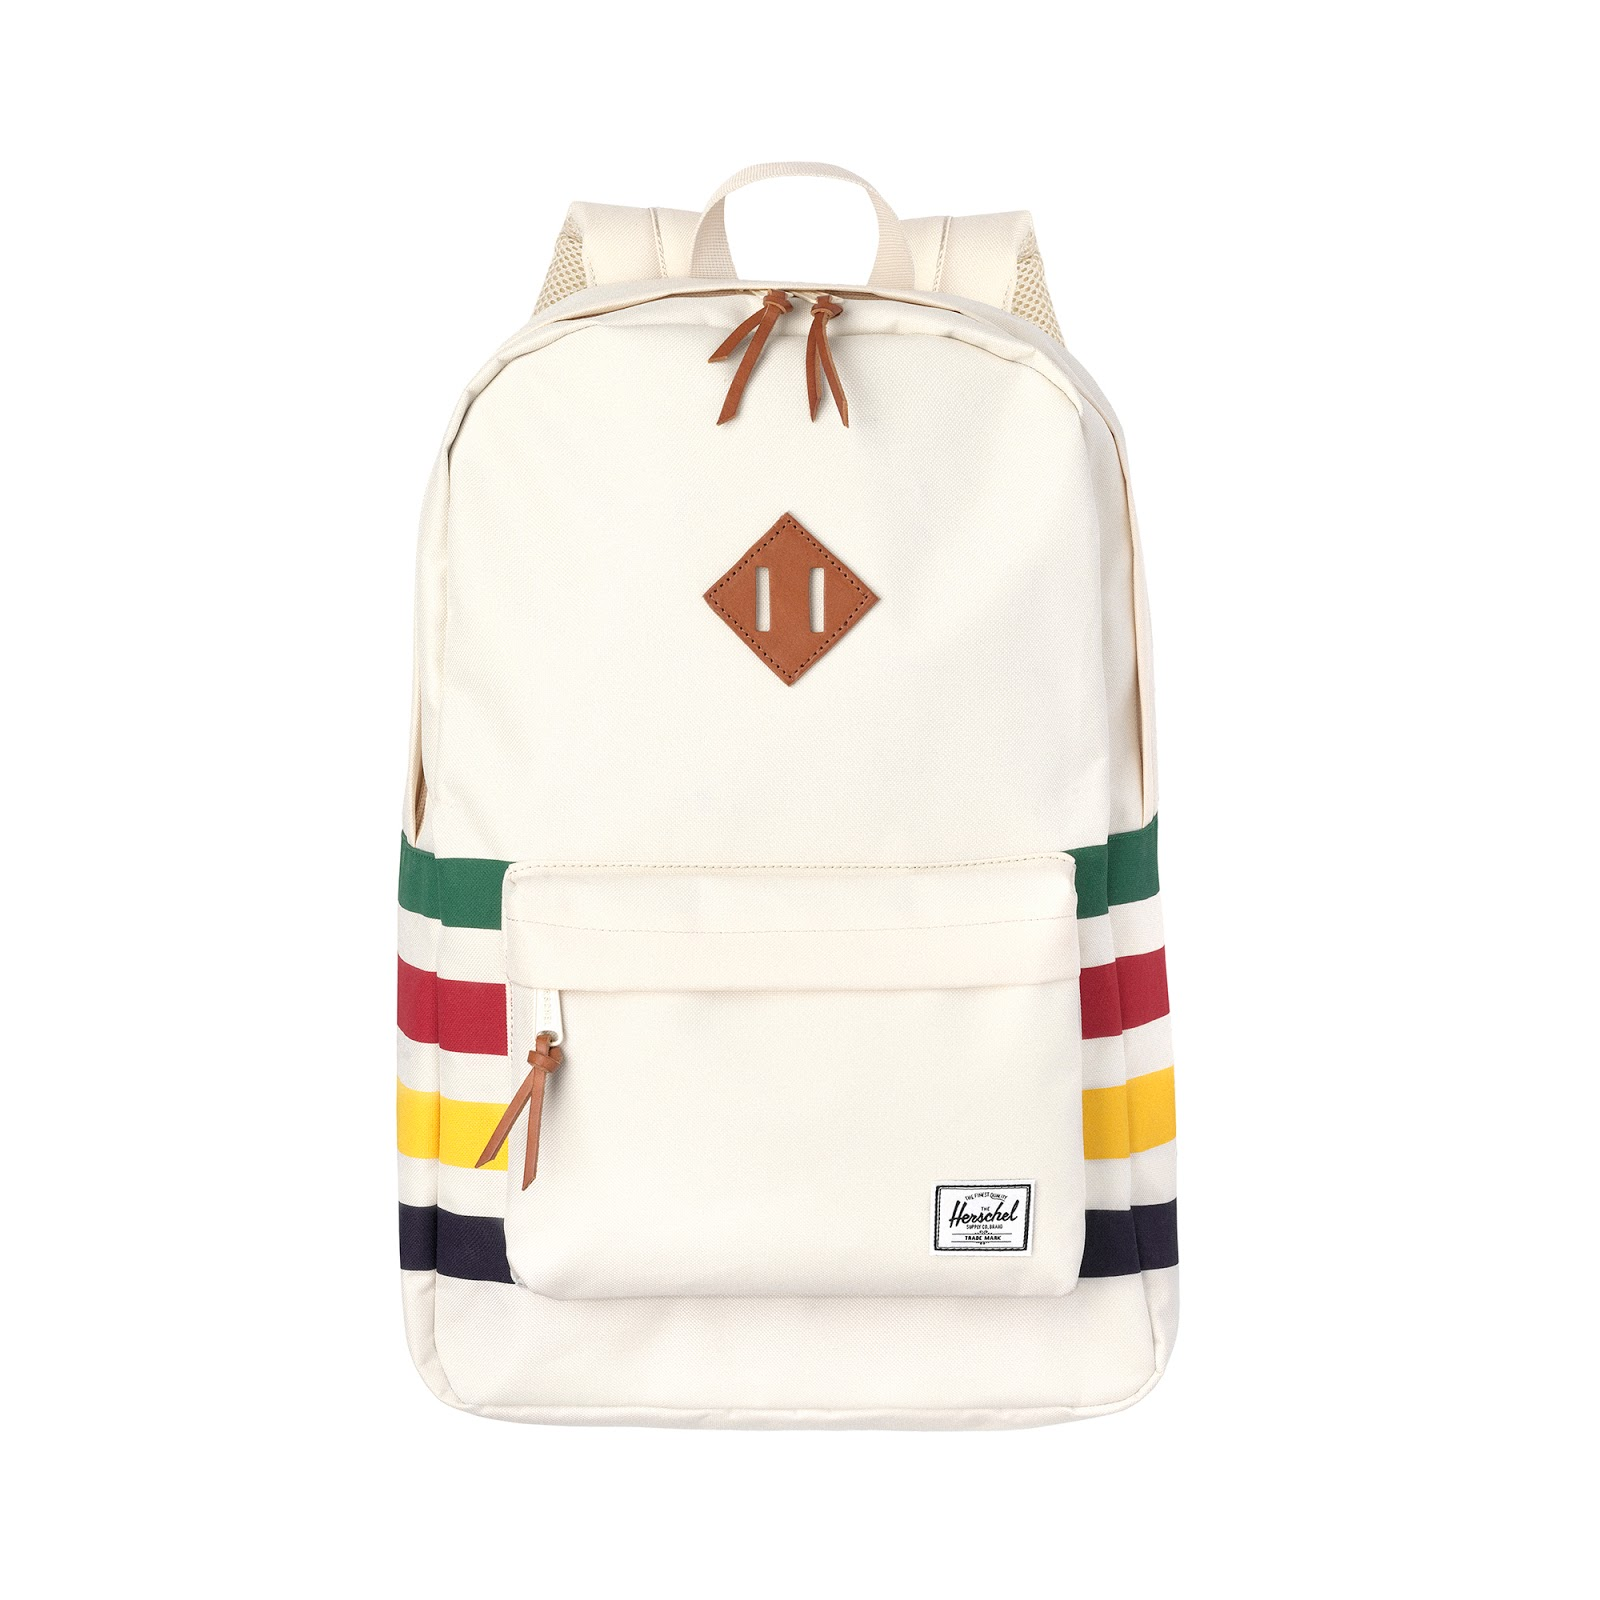 8a1fd7ae34fb Where To Buy Herschel Backpacks In Toronto- Fenix Toulouse Handball